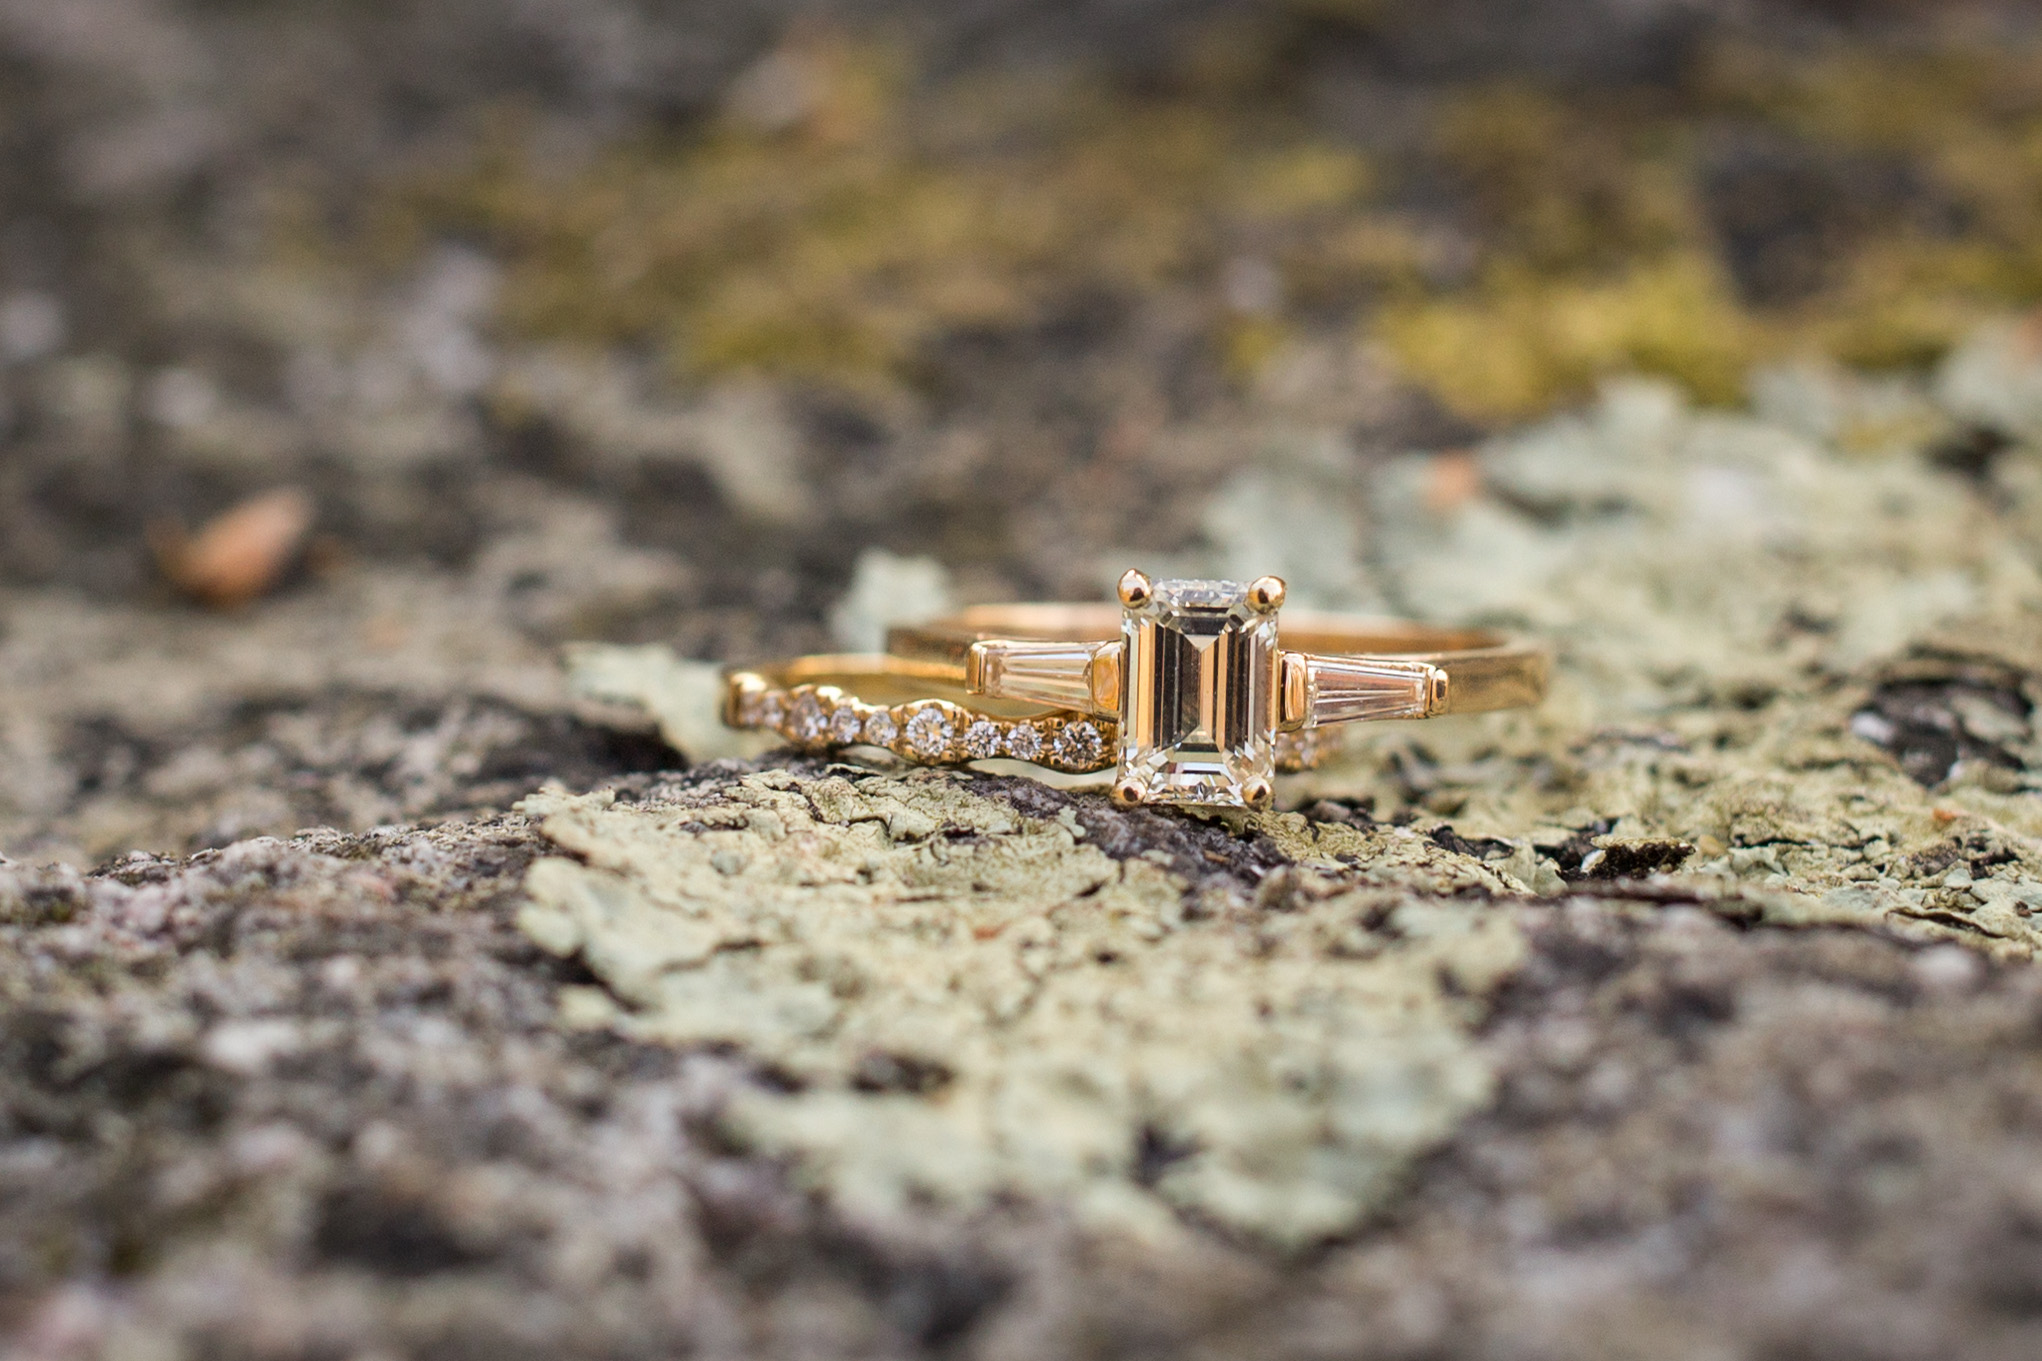 LightCreative_201904_AlexanBecky_Raleigh_Proposal_Photography_035_blog.jpg